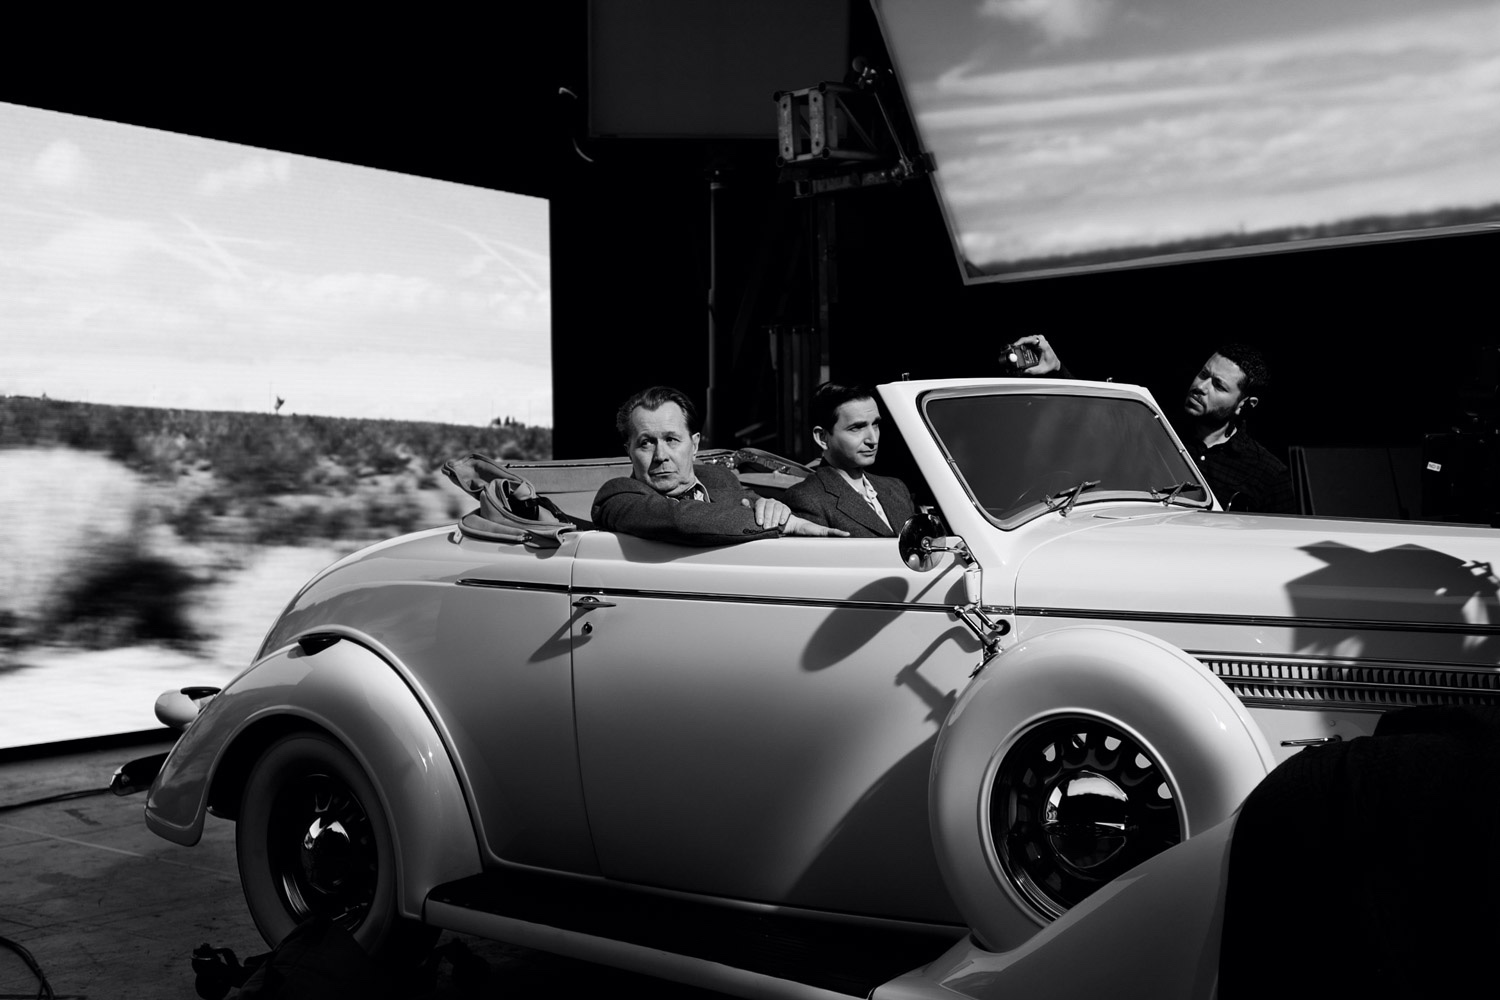 Oldman and Persaud pictured in an open-top automobile with footage of California scenery rolling by on screens around them.